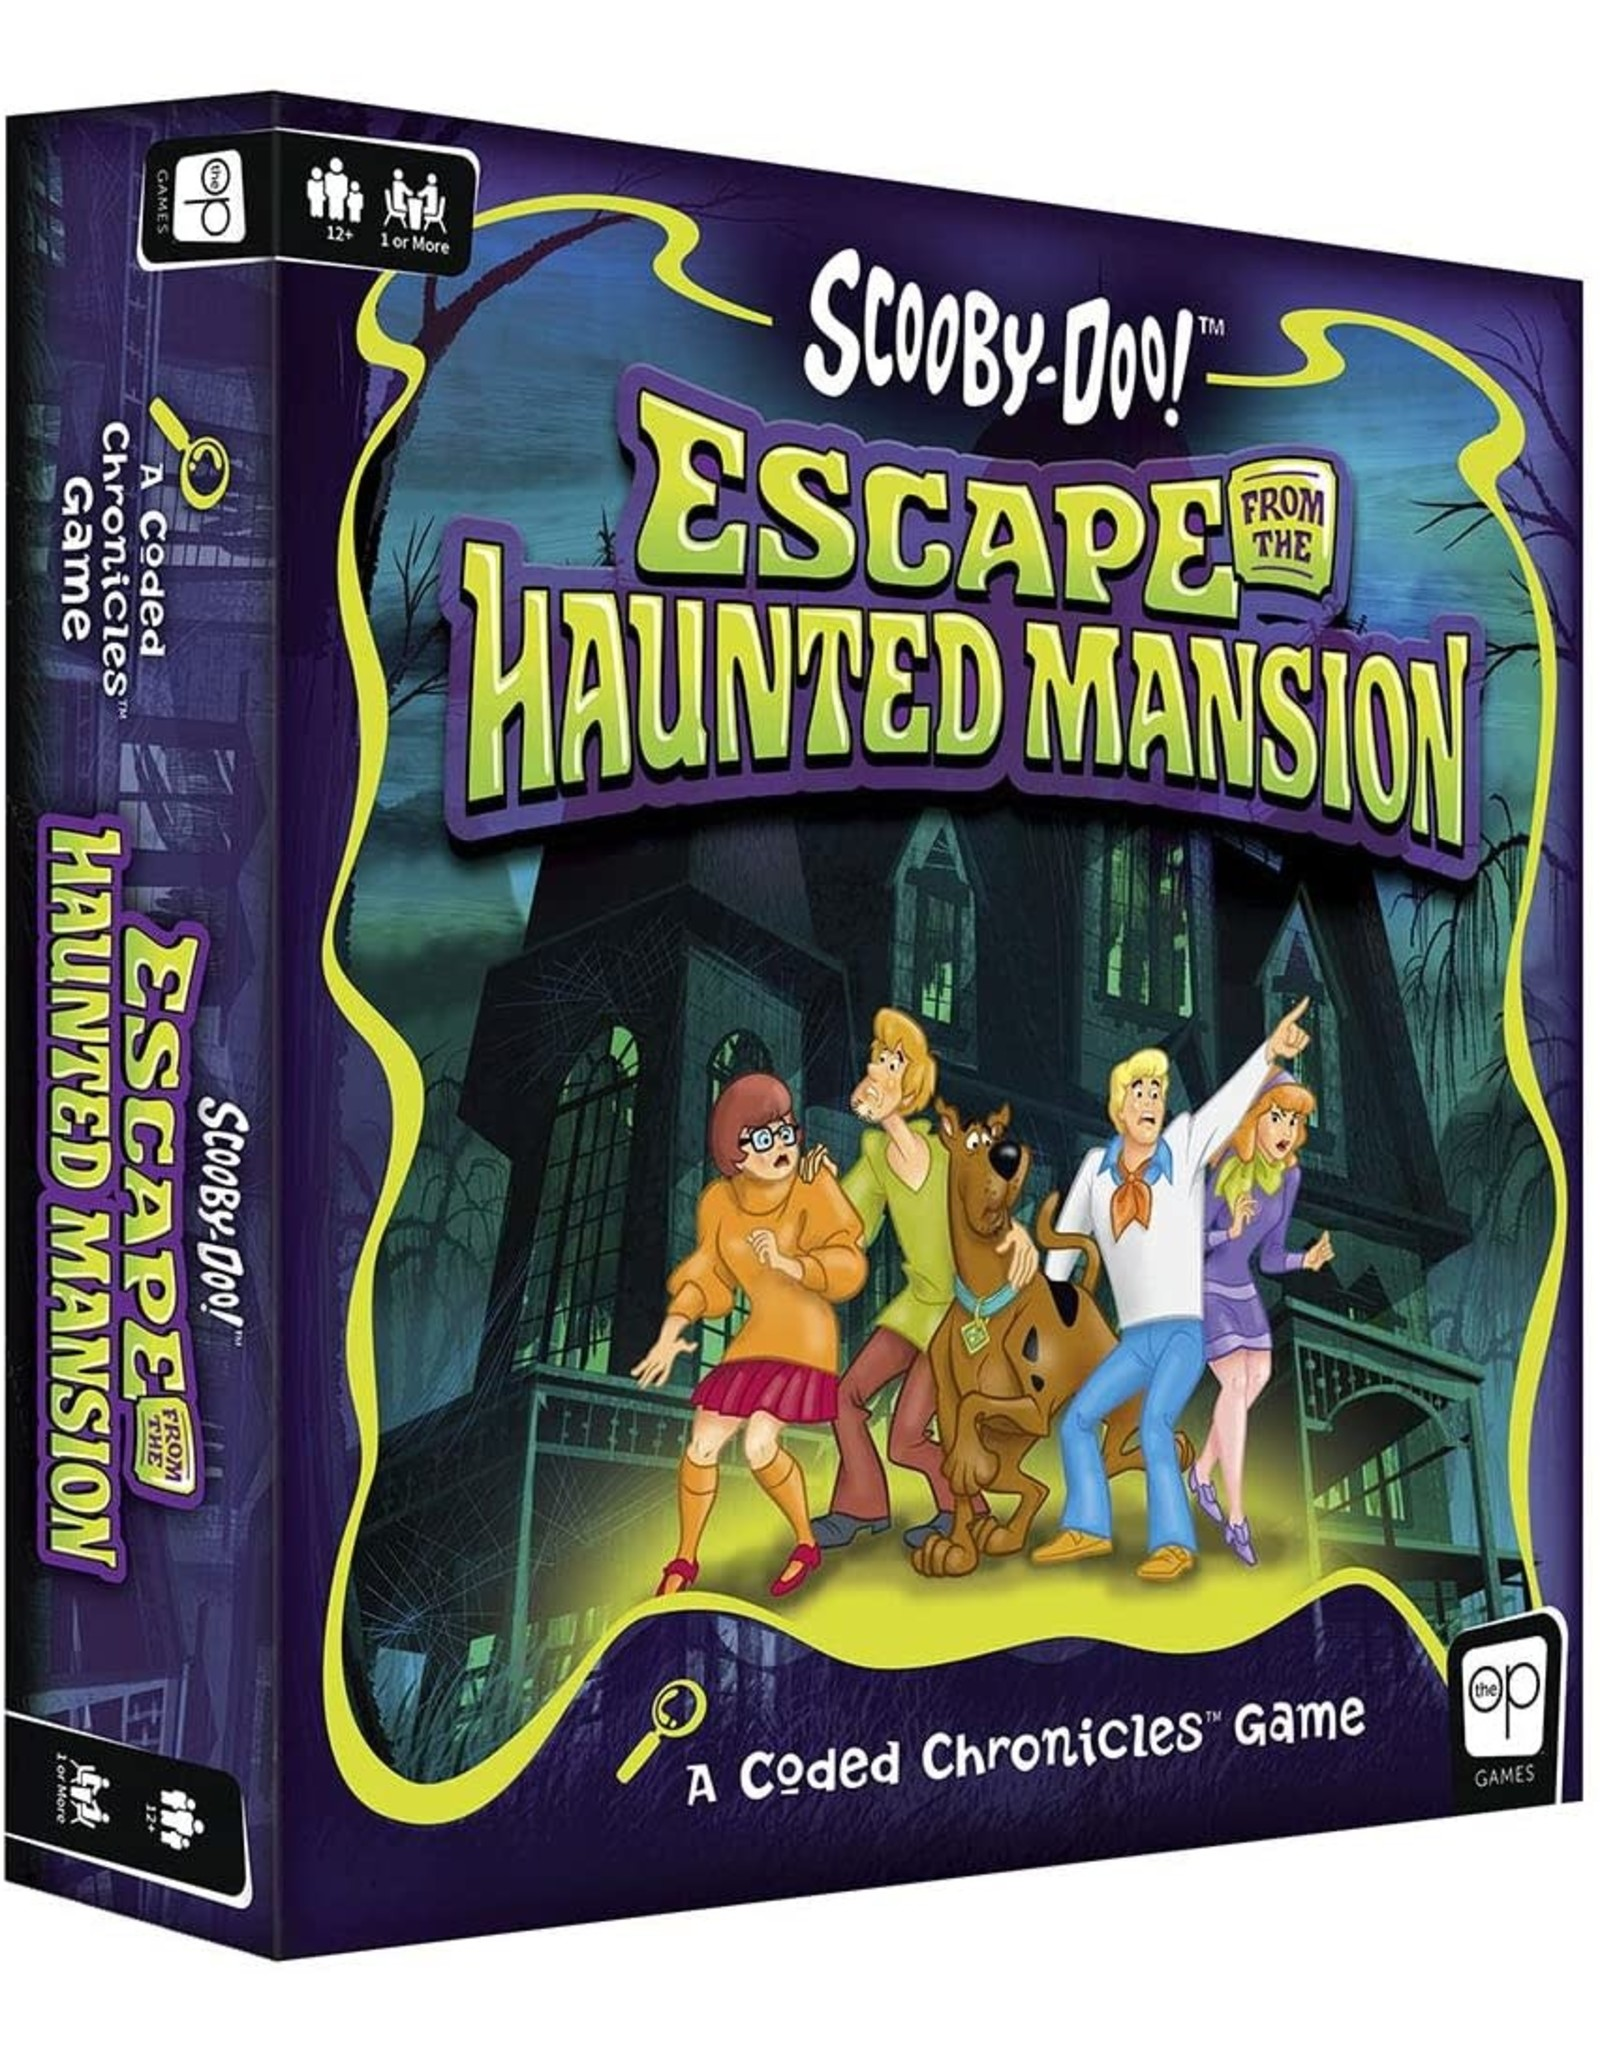 USAOPOLY SCOOBY-DOO! ESCAPE FROM THE HAUNTED MANSION